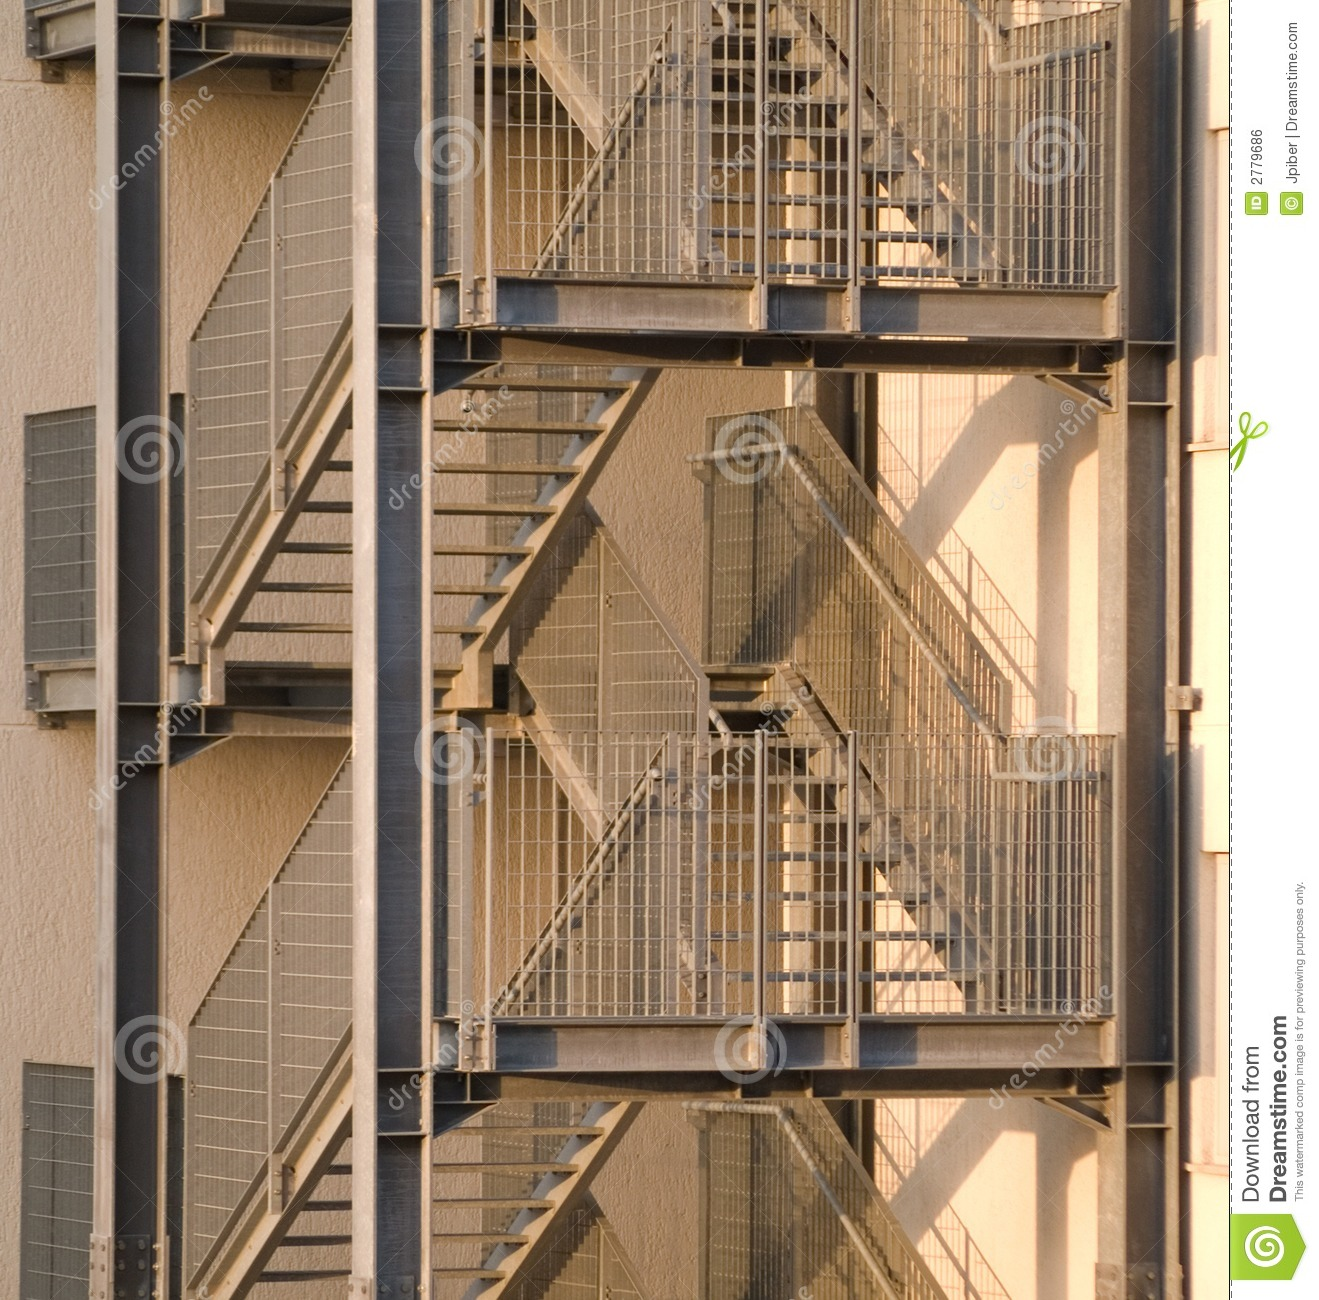 Fire Escape Stair Stock Photo Image Of Stair Escape